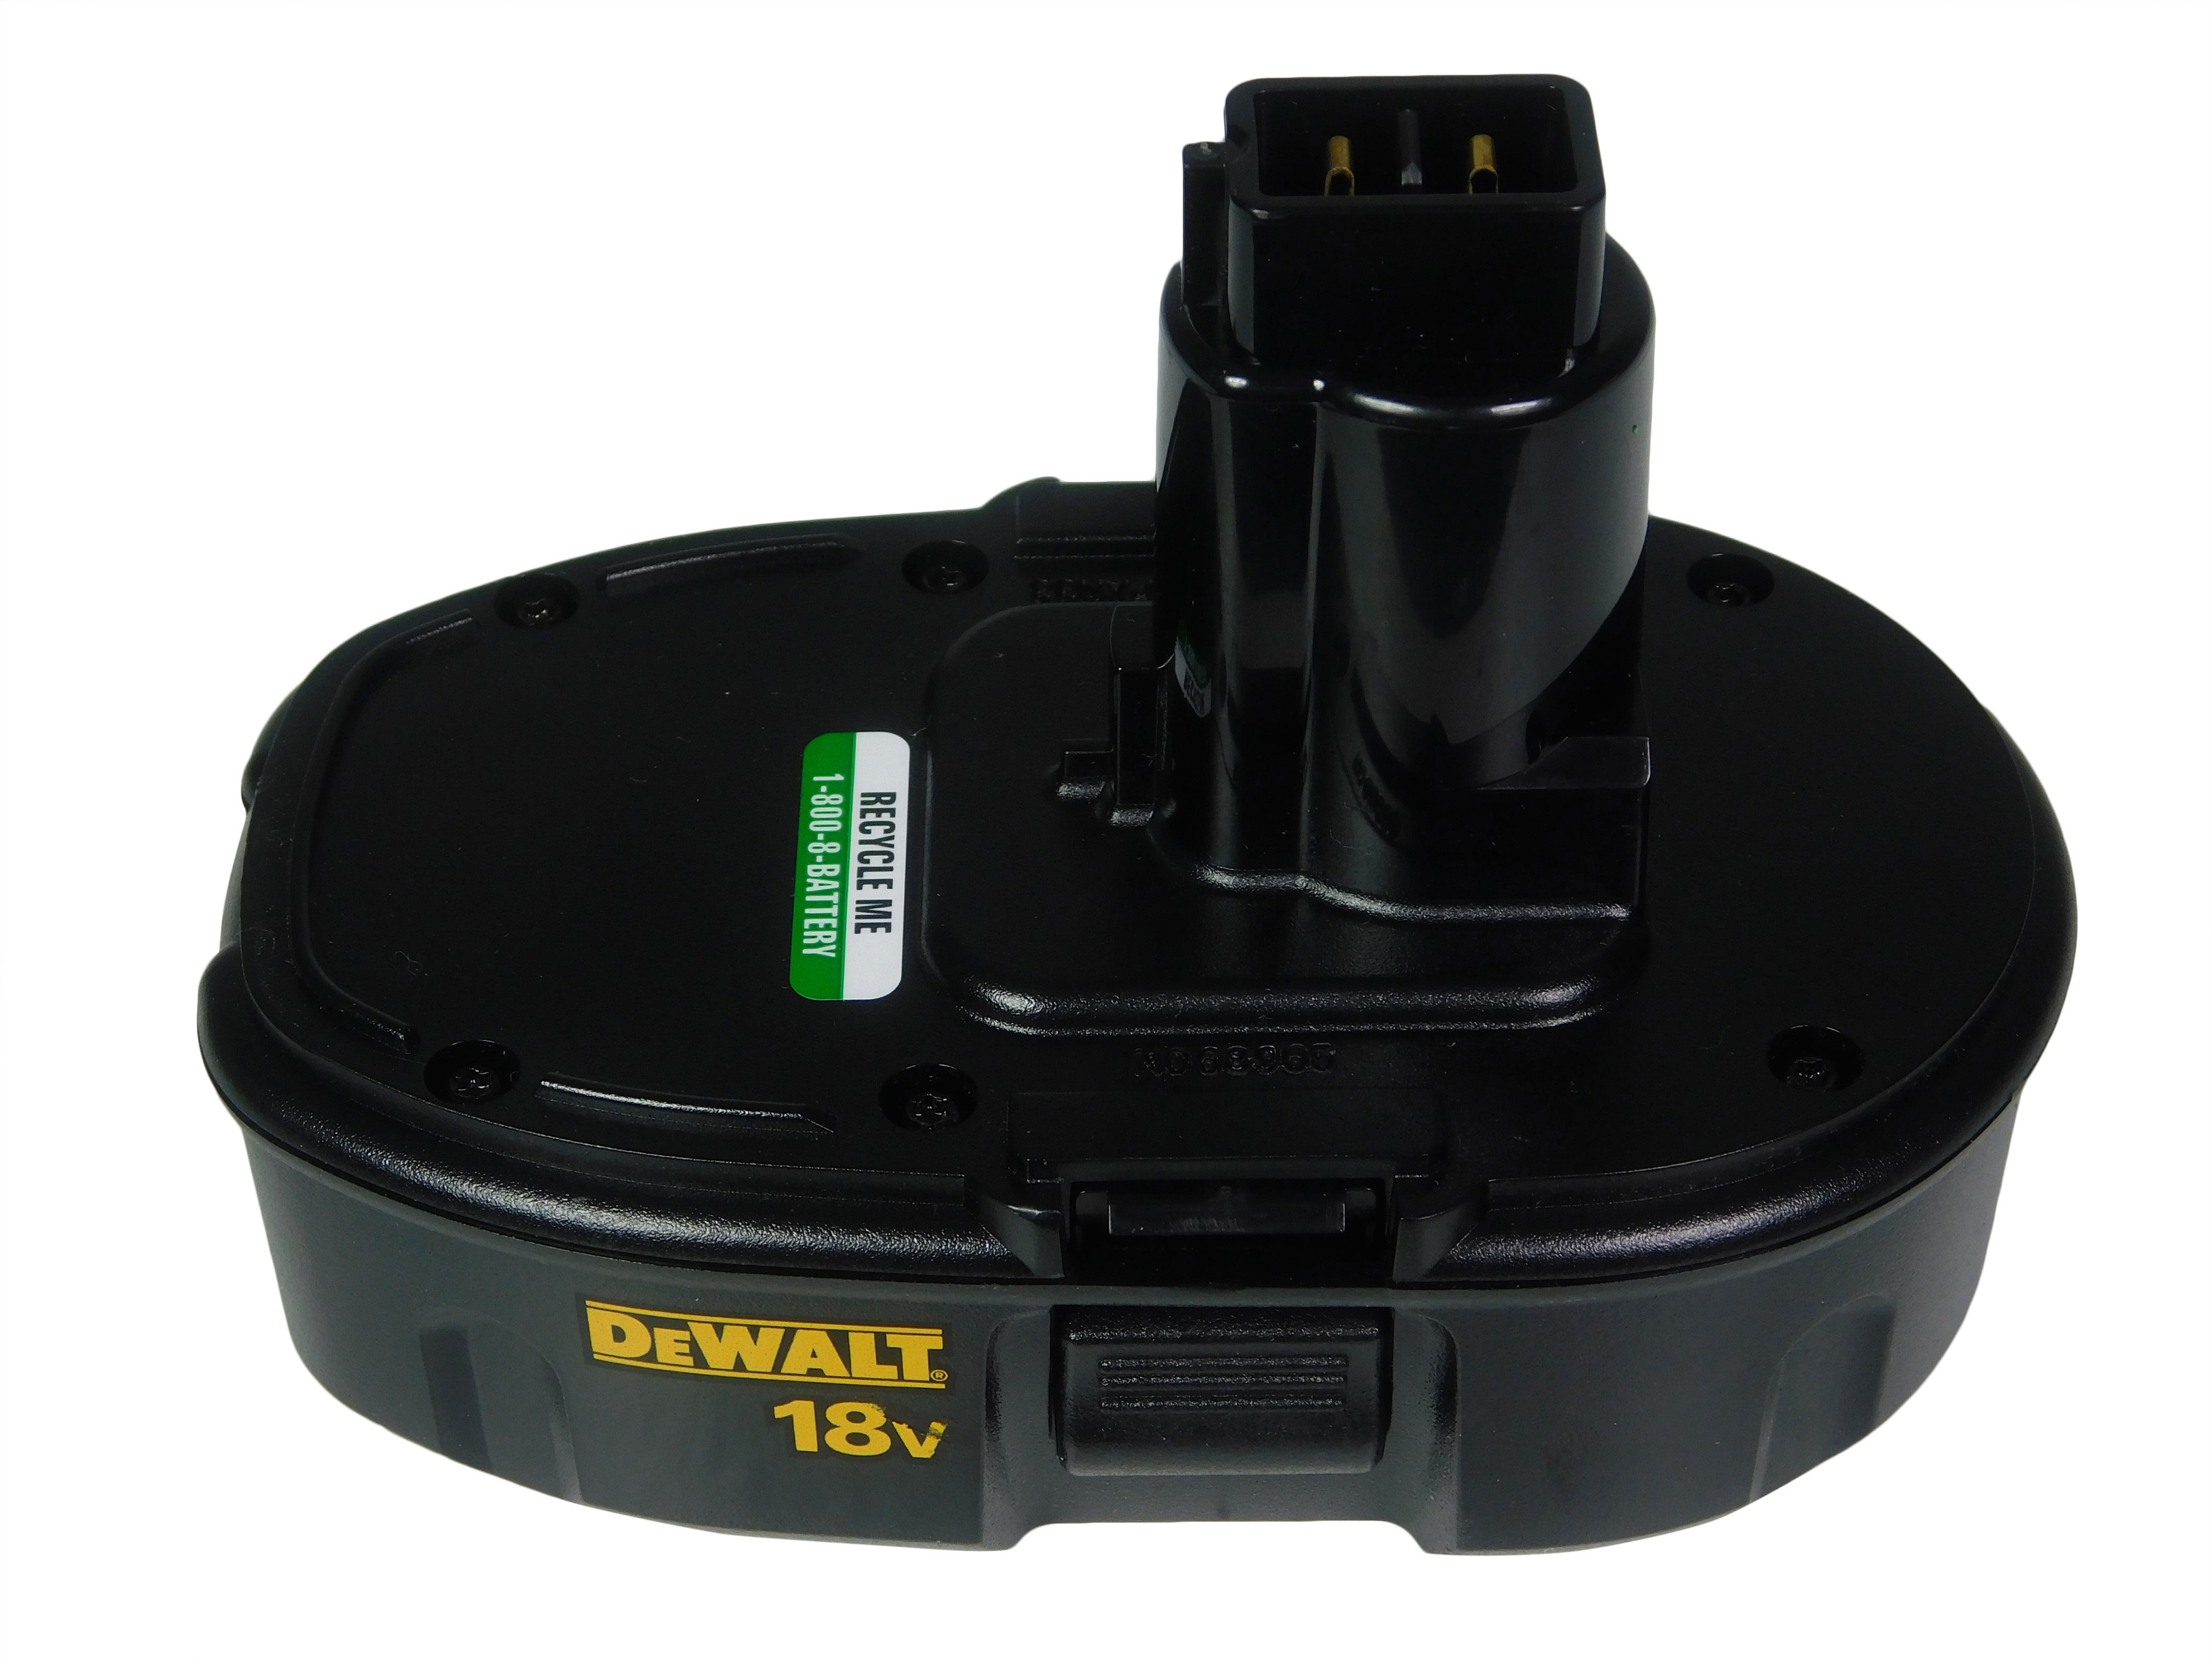 Dewalt-DC9098-18V-Ni-Cad-Battery-Single-Pack-image-9